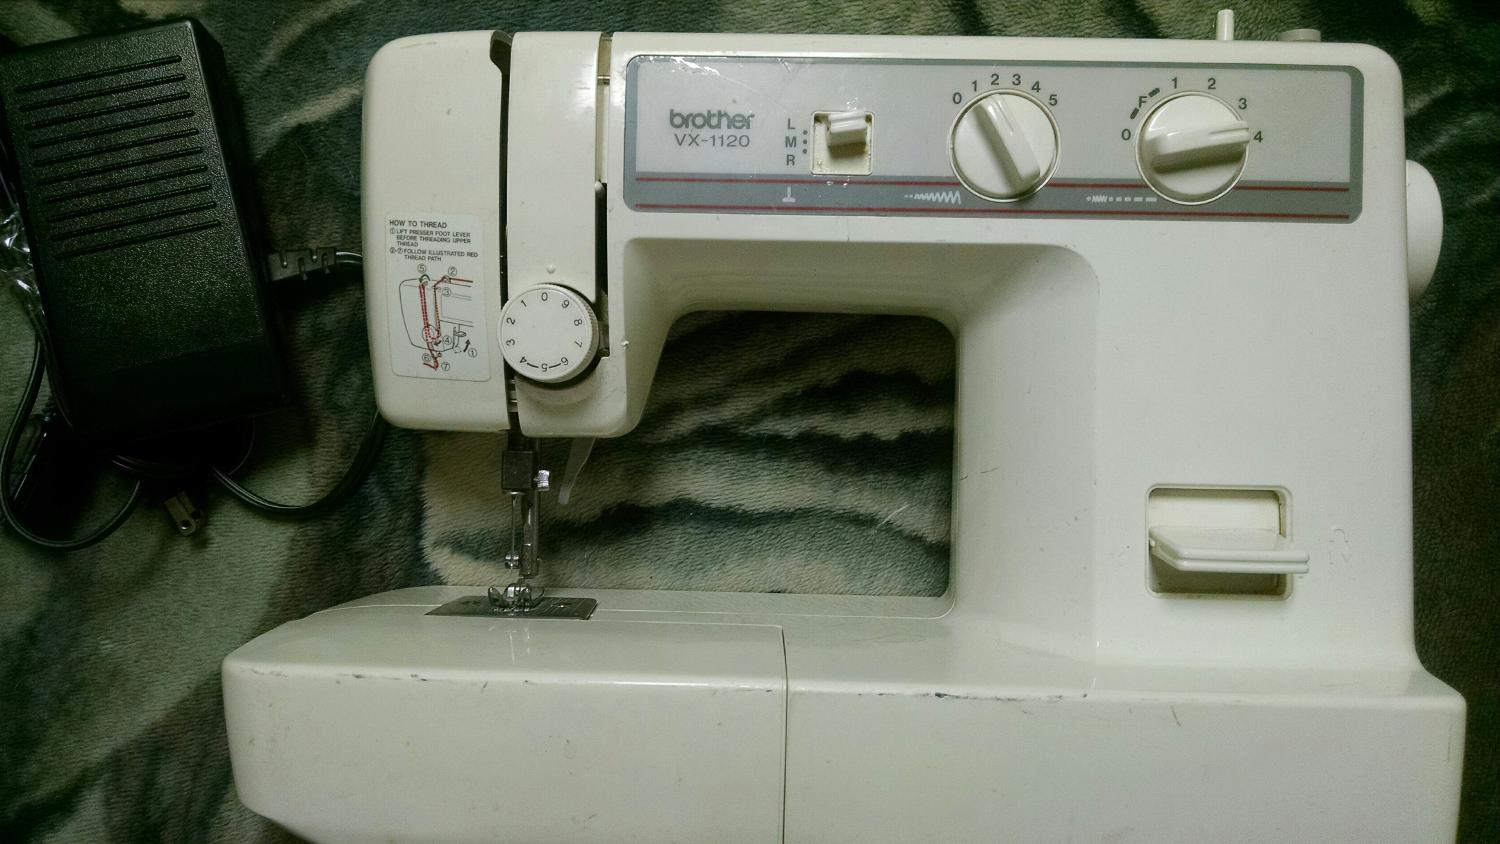 Best Brother Vx 1120 Sewing Machine Gently Used Push Pedal Adjule Thread Width And Style For In Evanston Wyoming 2018